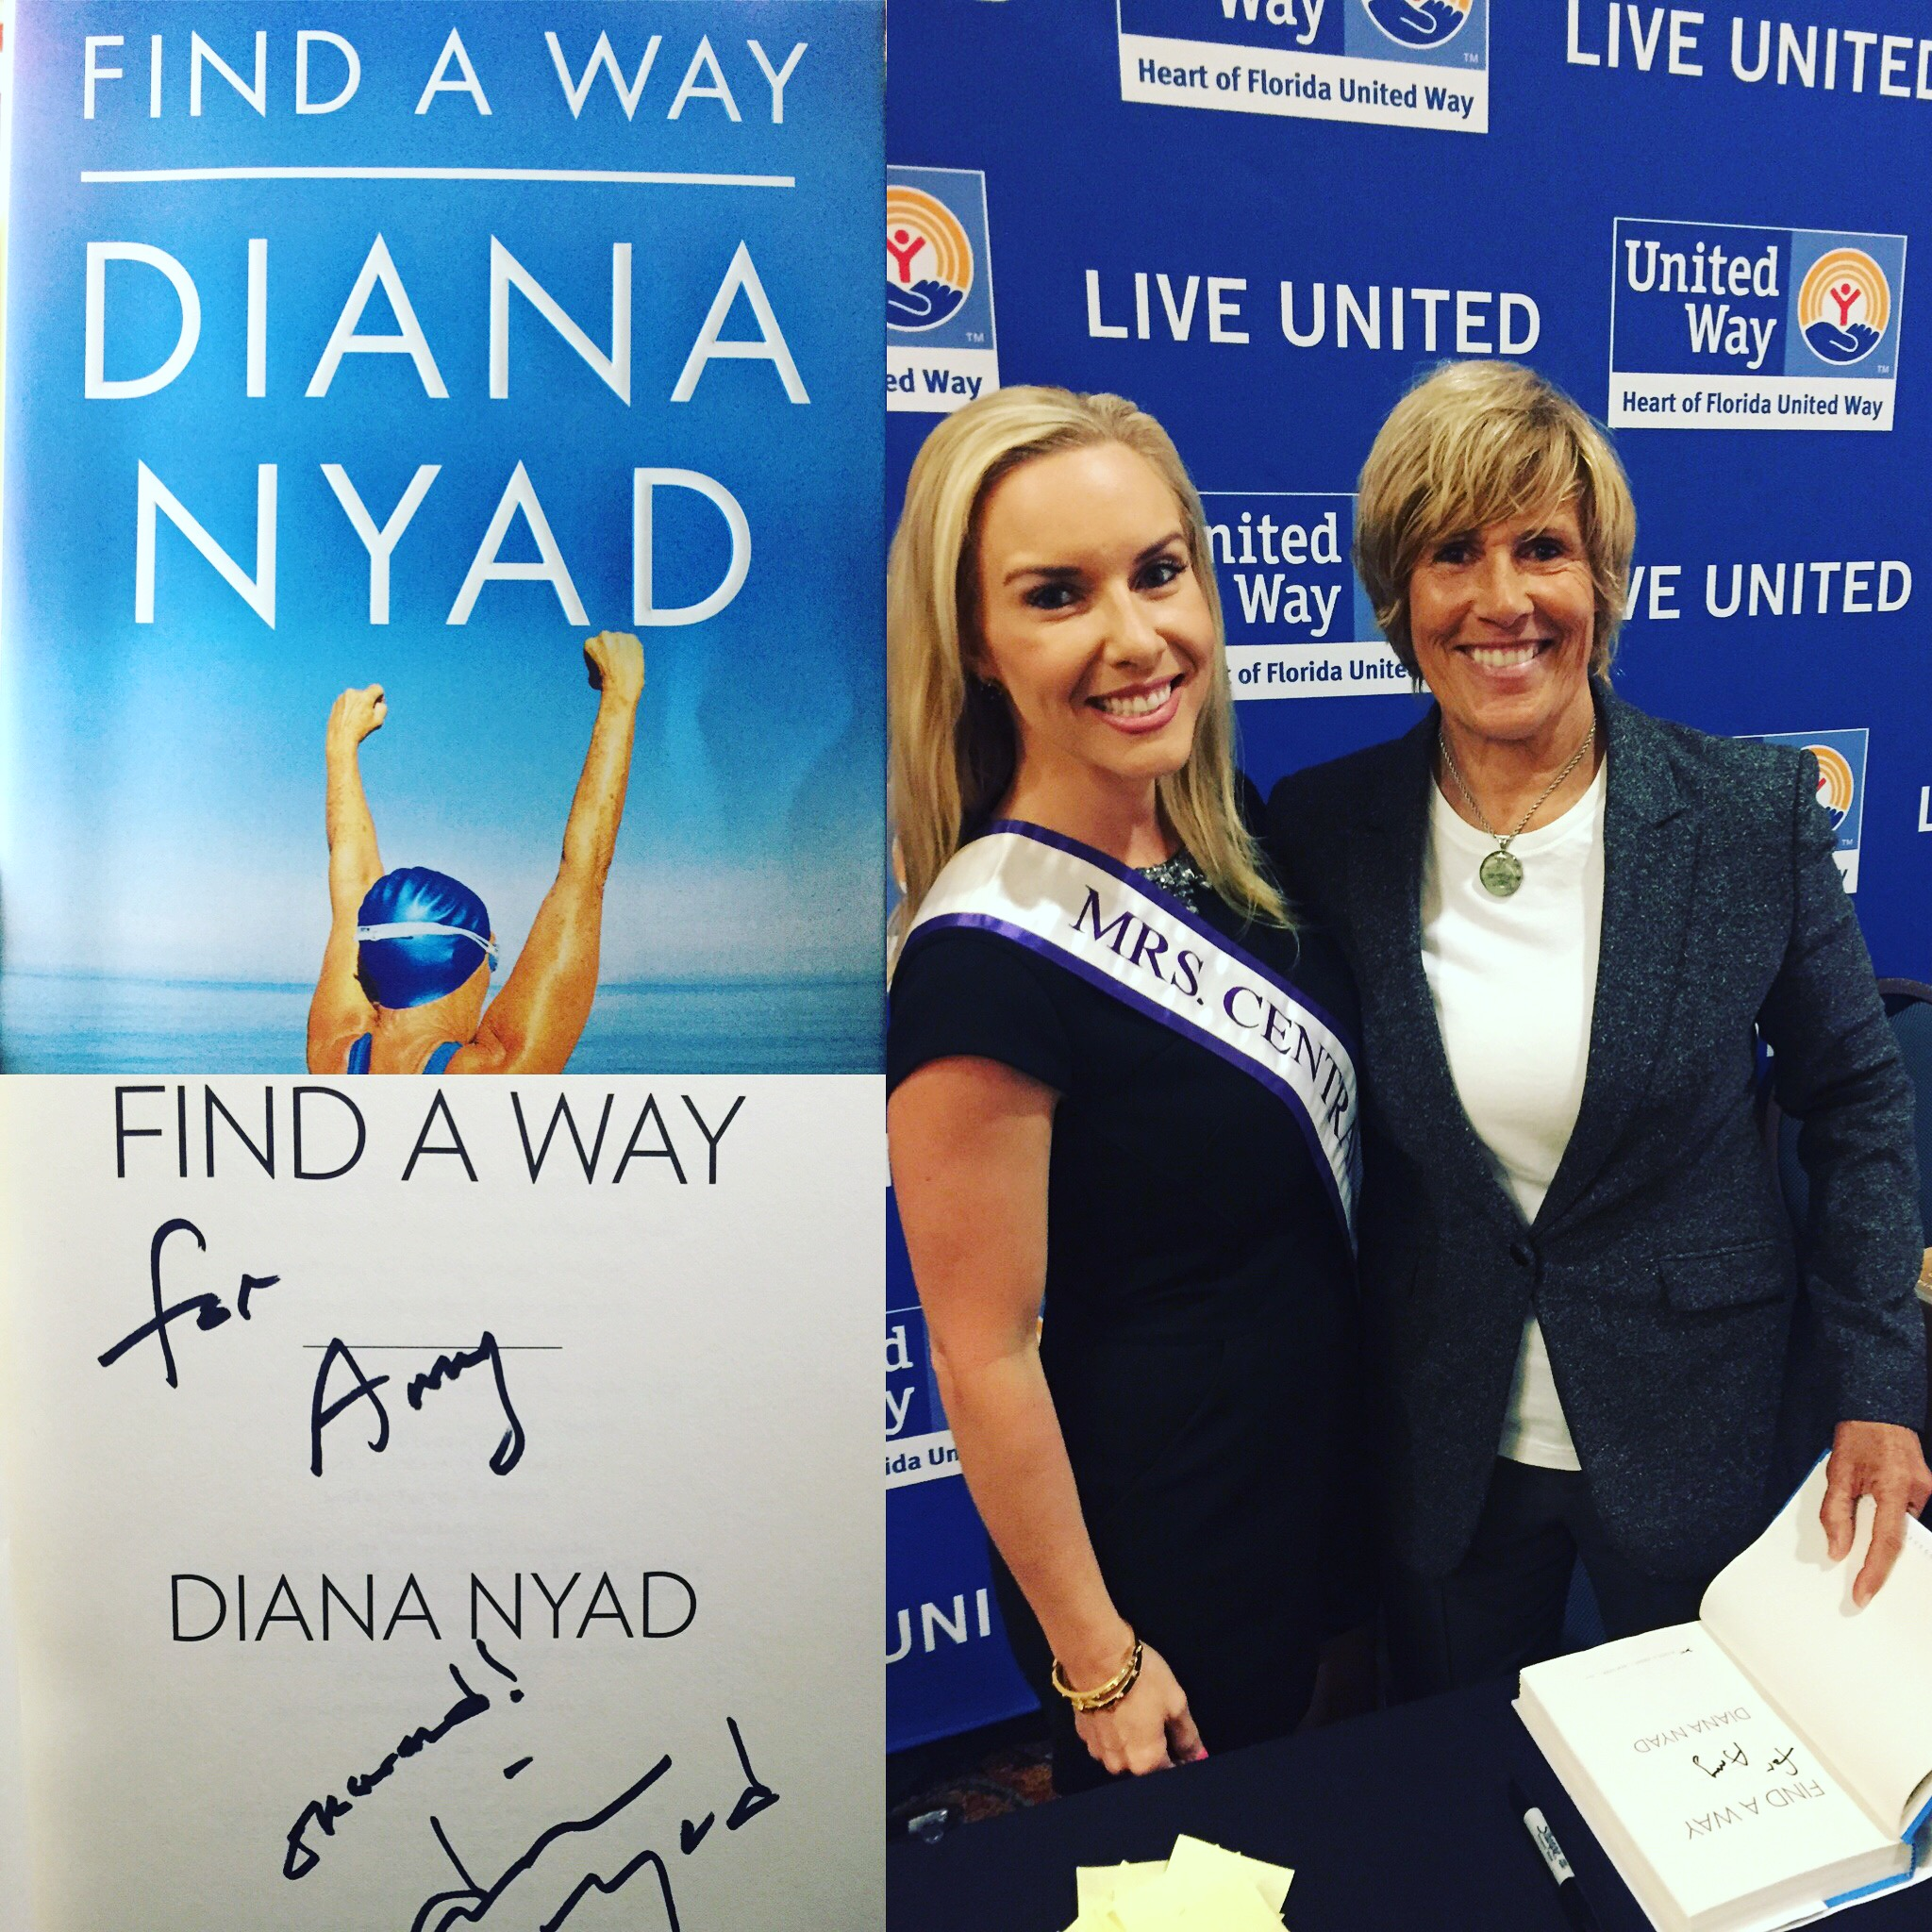 Amy & Diana Nyad_United Way Event